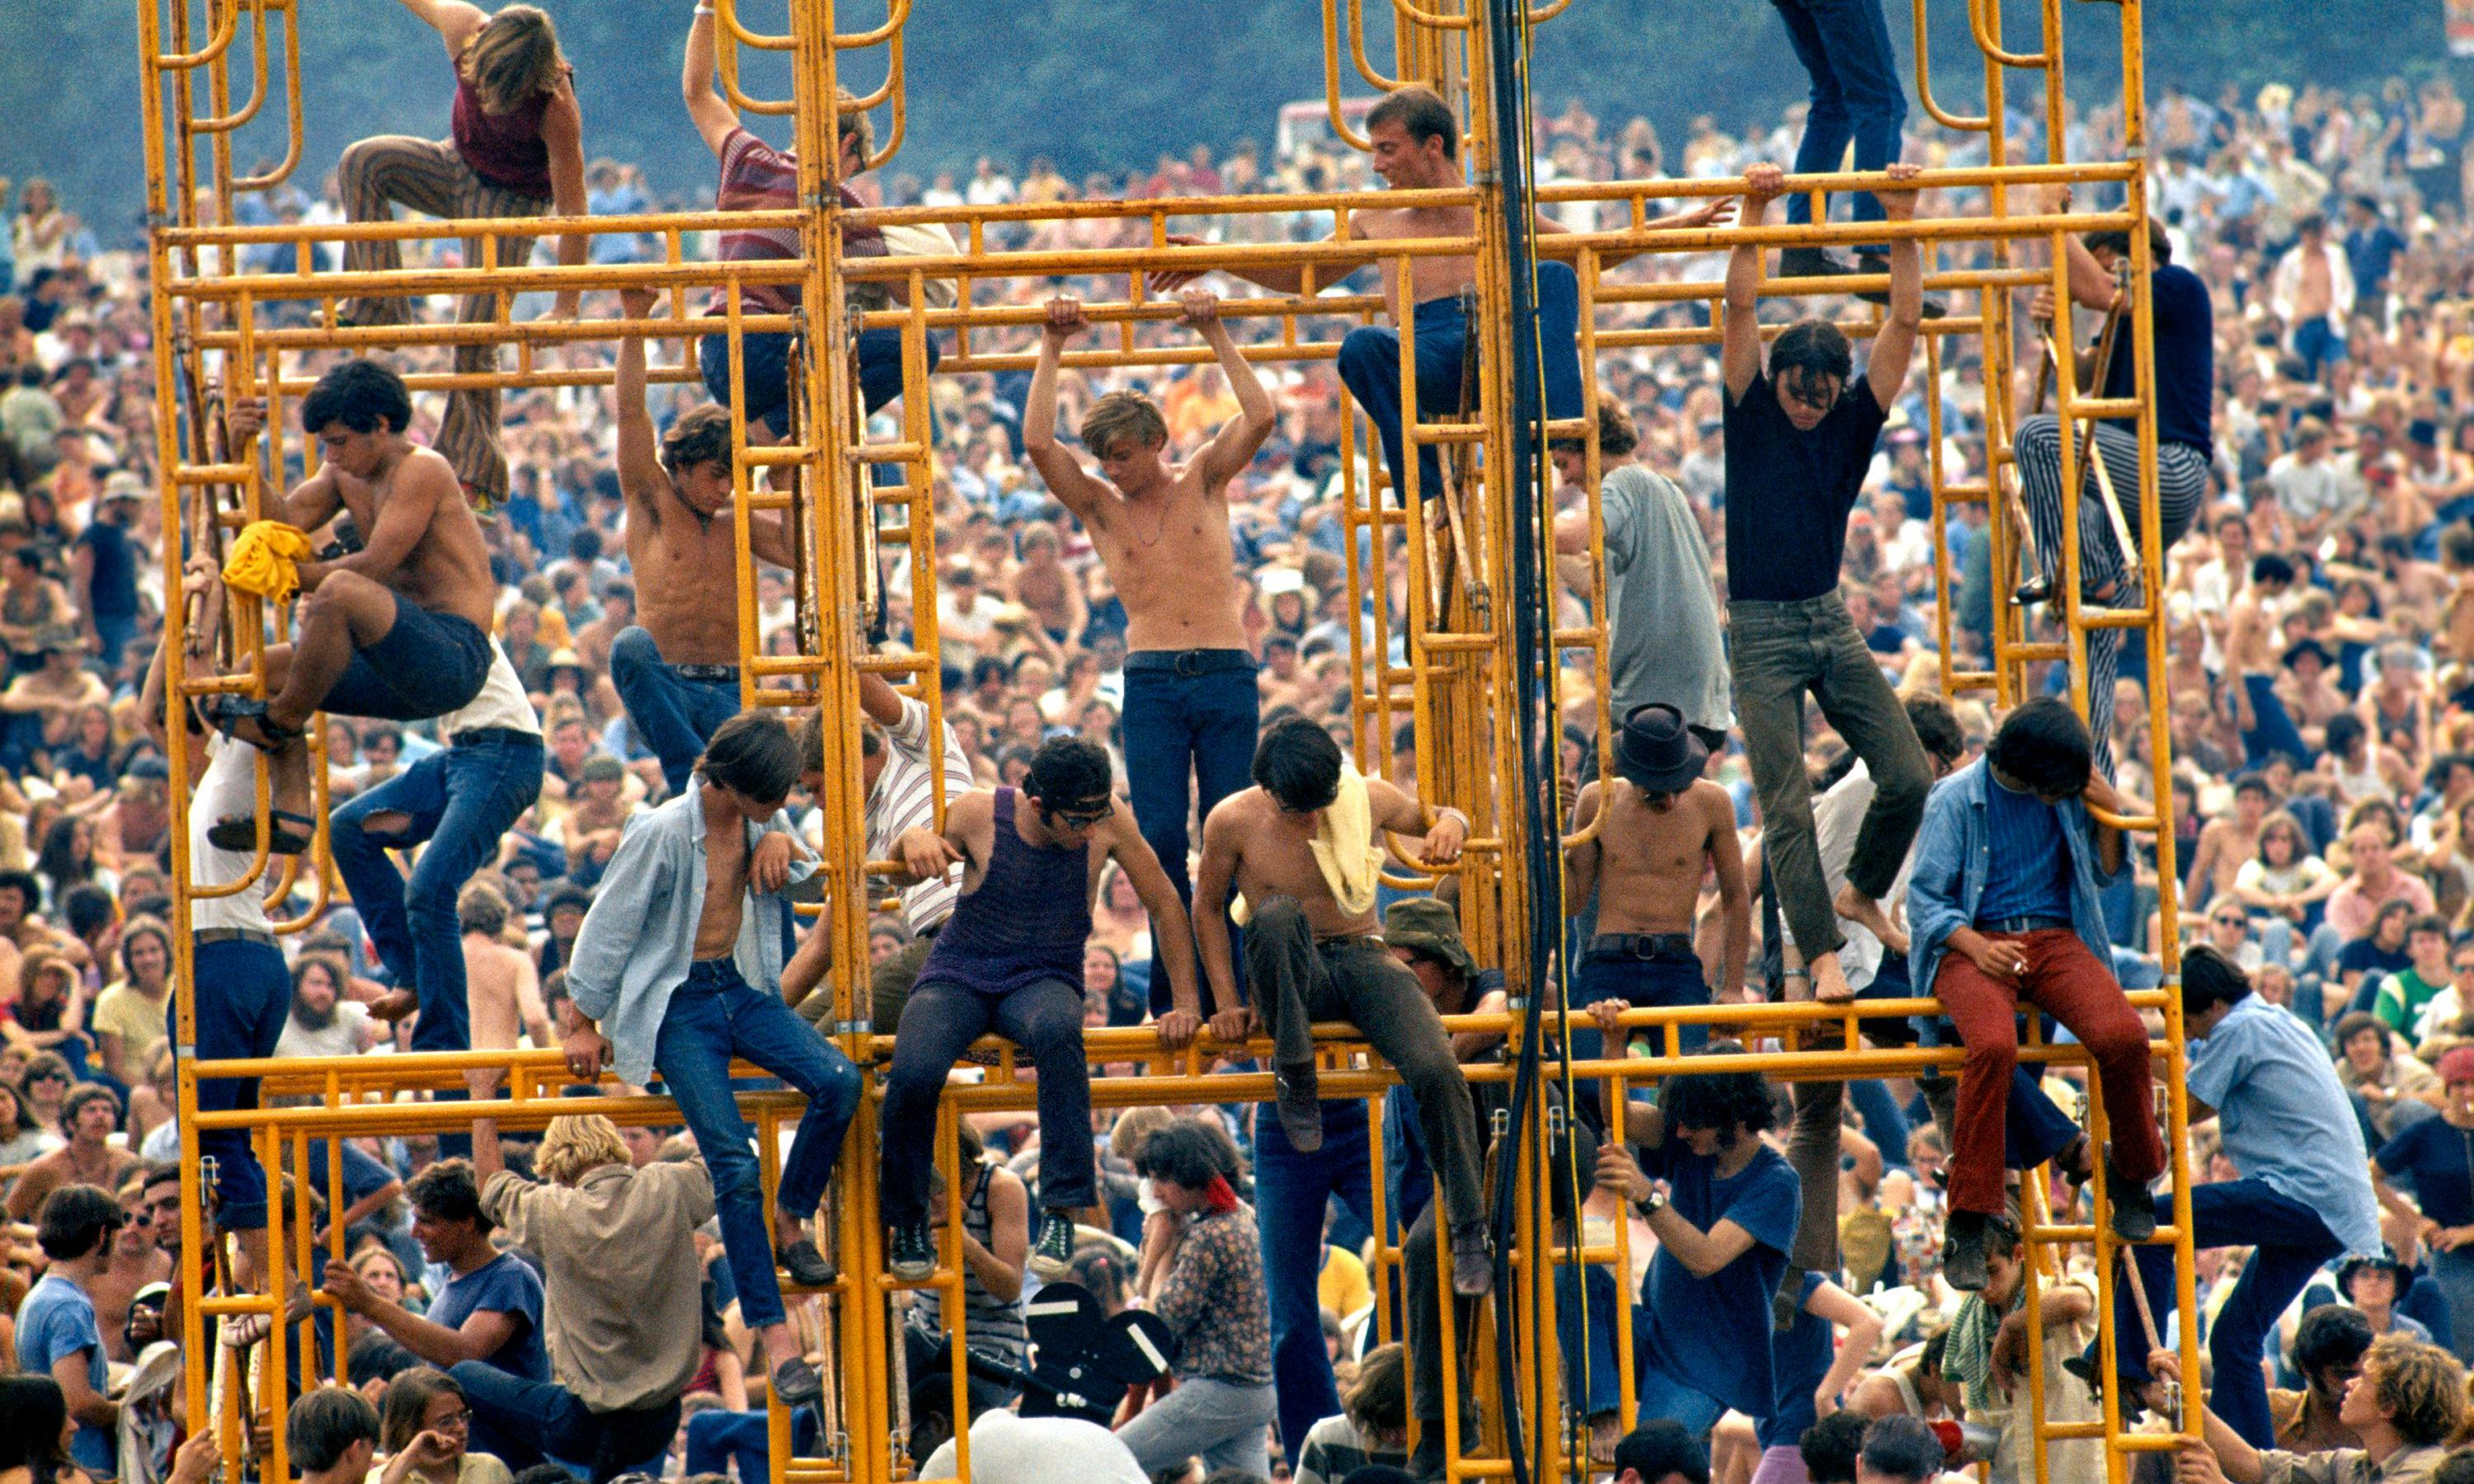 TV tonight: a strangely straight look at the 1969 hippy pilgrimage to Woodstock